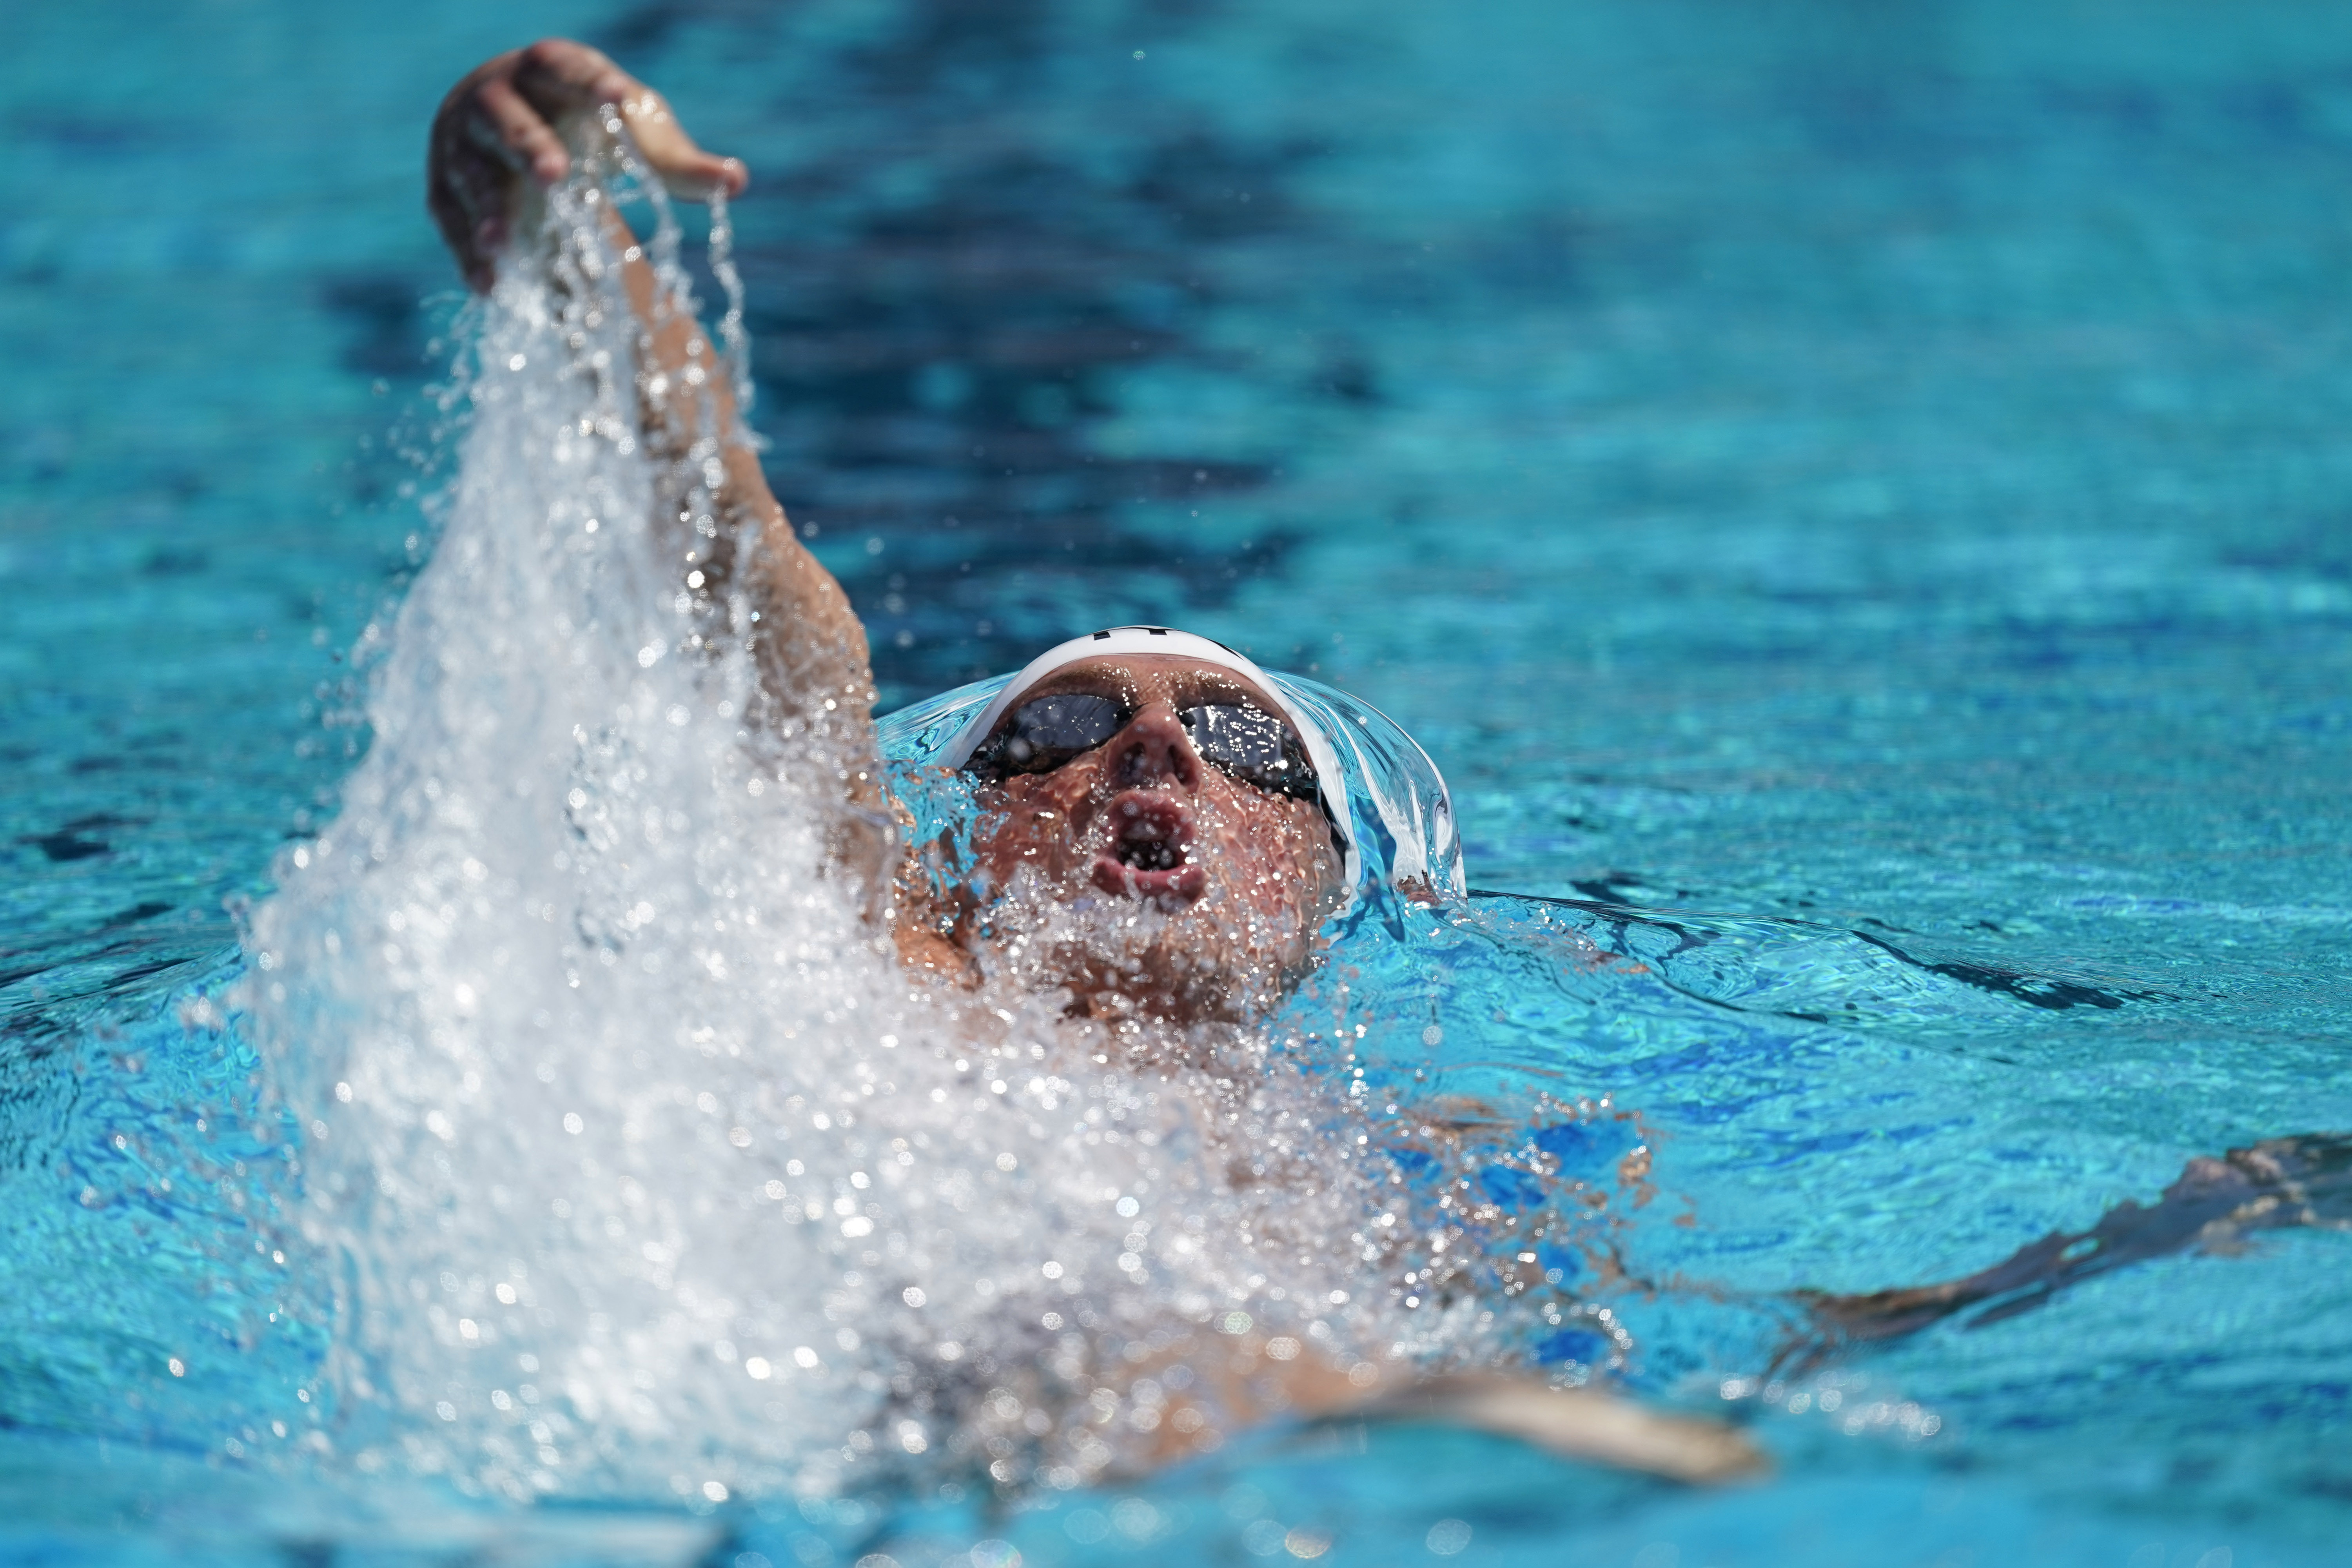 Swimmer Ryan Lochte Miffed At His Times In Return To Racing Yourbasin Sounds better when it's call an ambulance but still cool. copyright 2019 the associated press all rights reserved